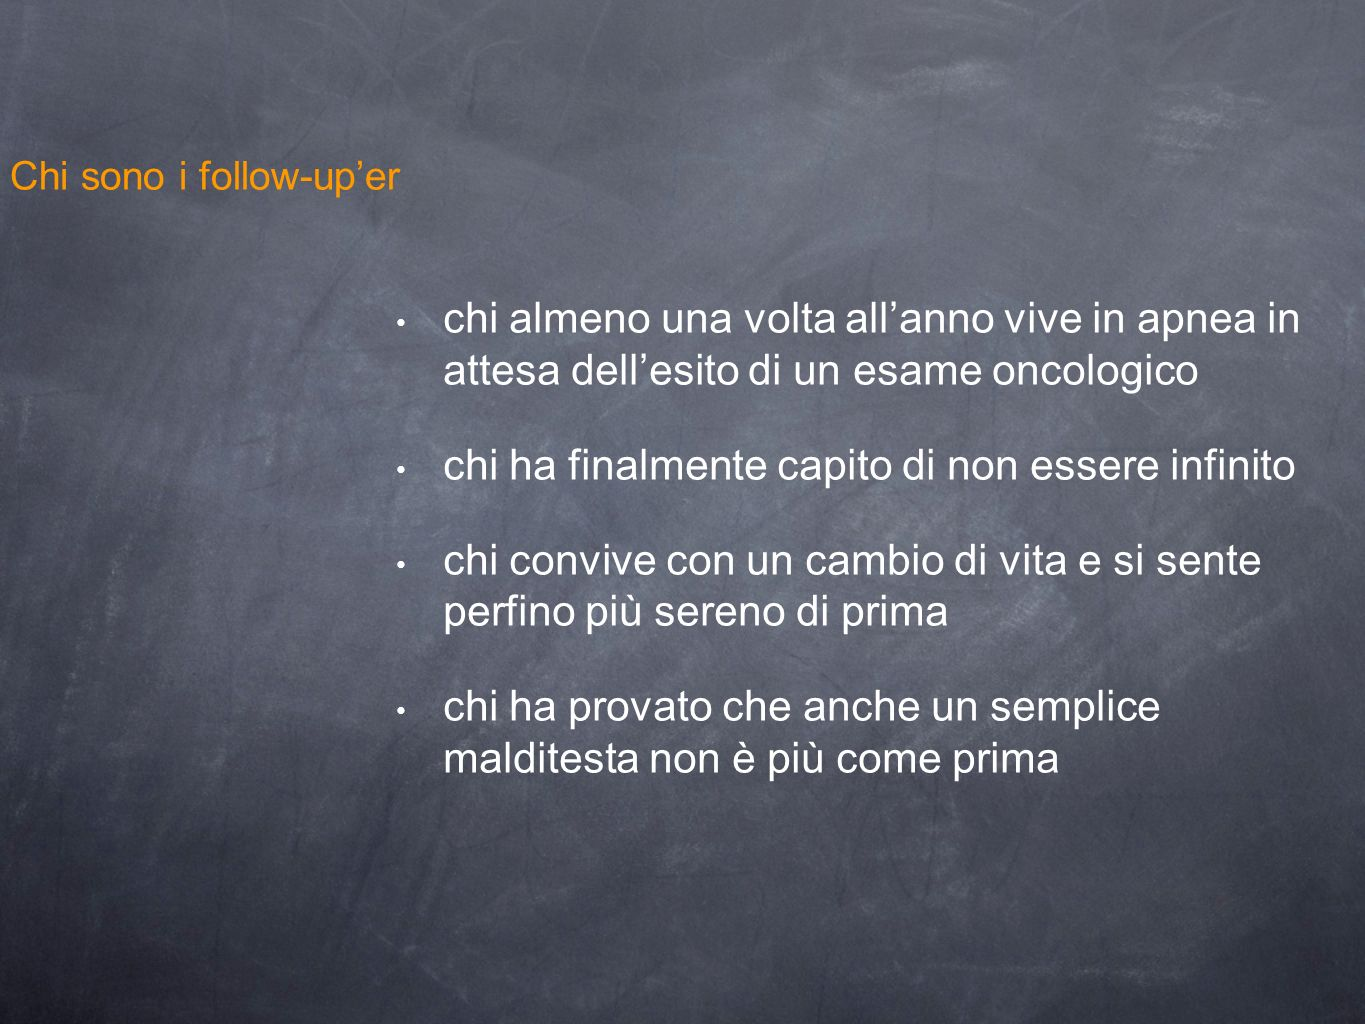 Chi sono i follow-up'er